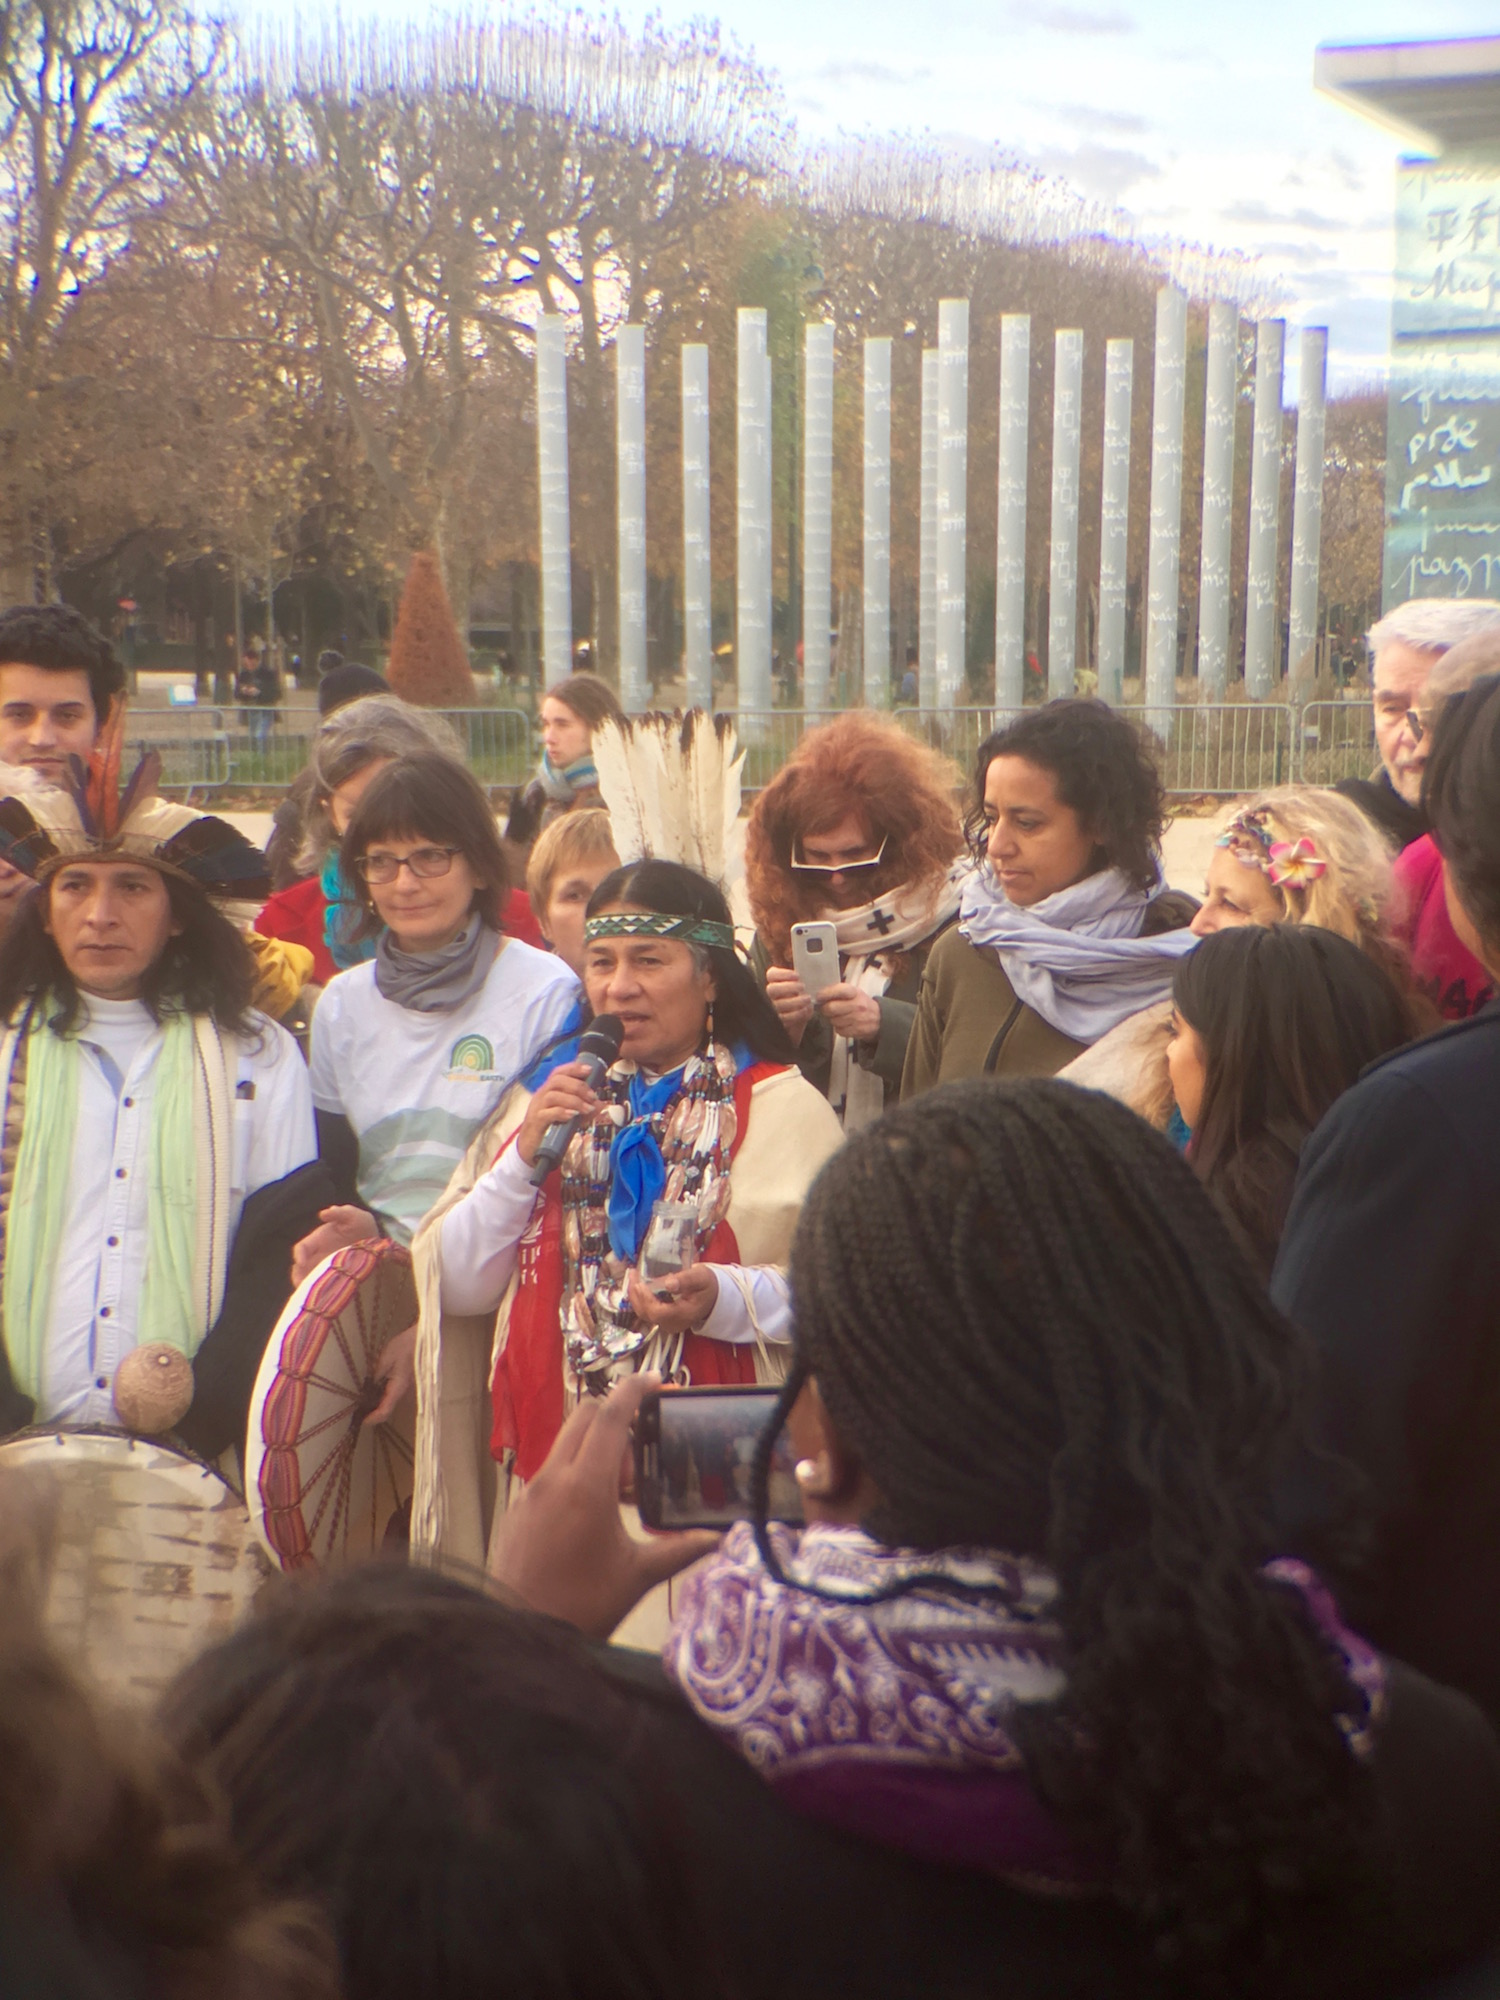 On the next day in the Champ de Mars, indigenous people gathered to speak from the heart about the plight of the earth and her creatures.